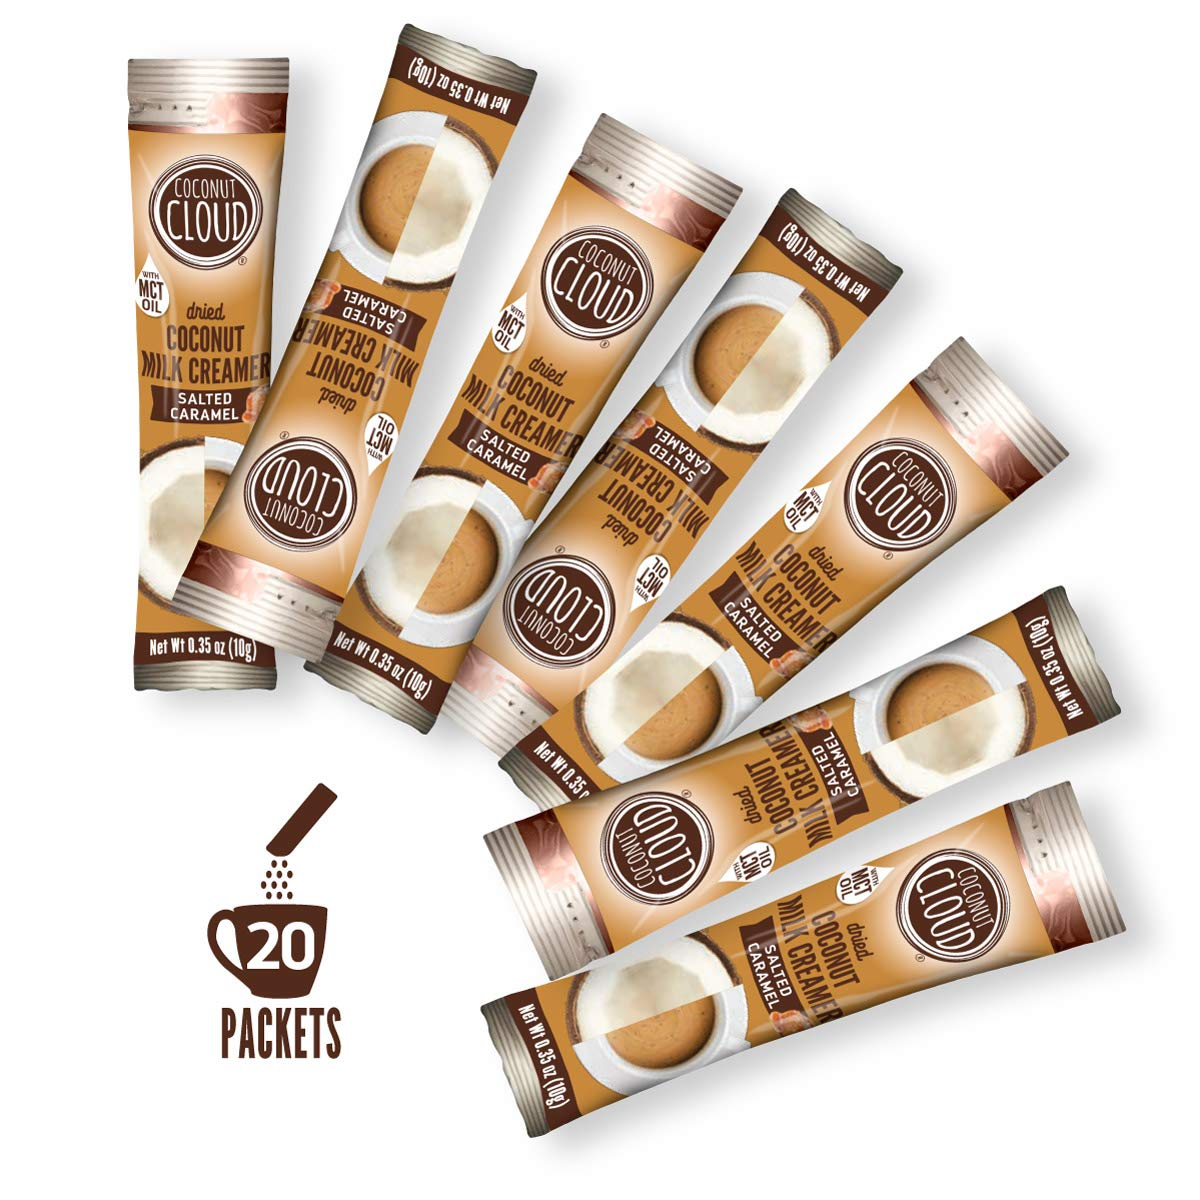 Coconut Cloud: Salted Caramel Coffee Creamer, Dairy-Free Made from Coconut Powdered Milk with MCT Oil | Vegan, Plant Based, Non GMO, Gluten & Soy Free (Portable To-Go Individual Cream), 20 servings